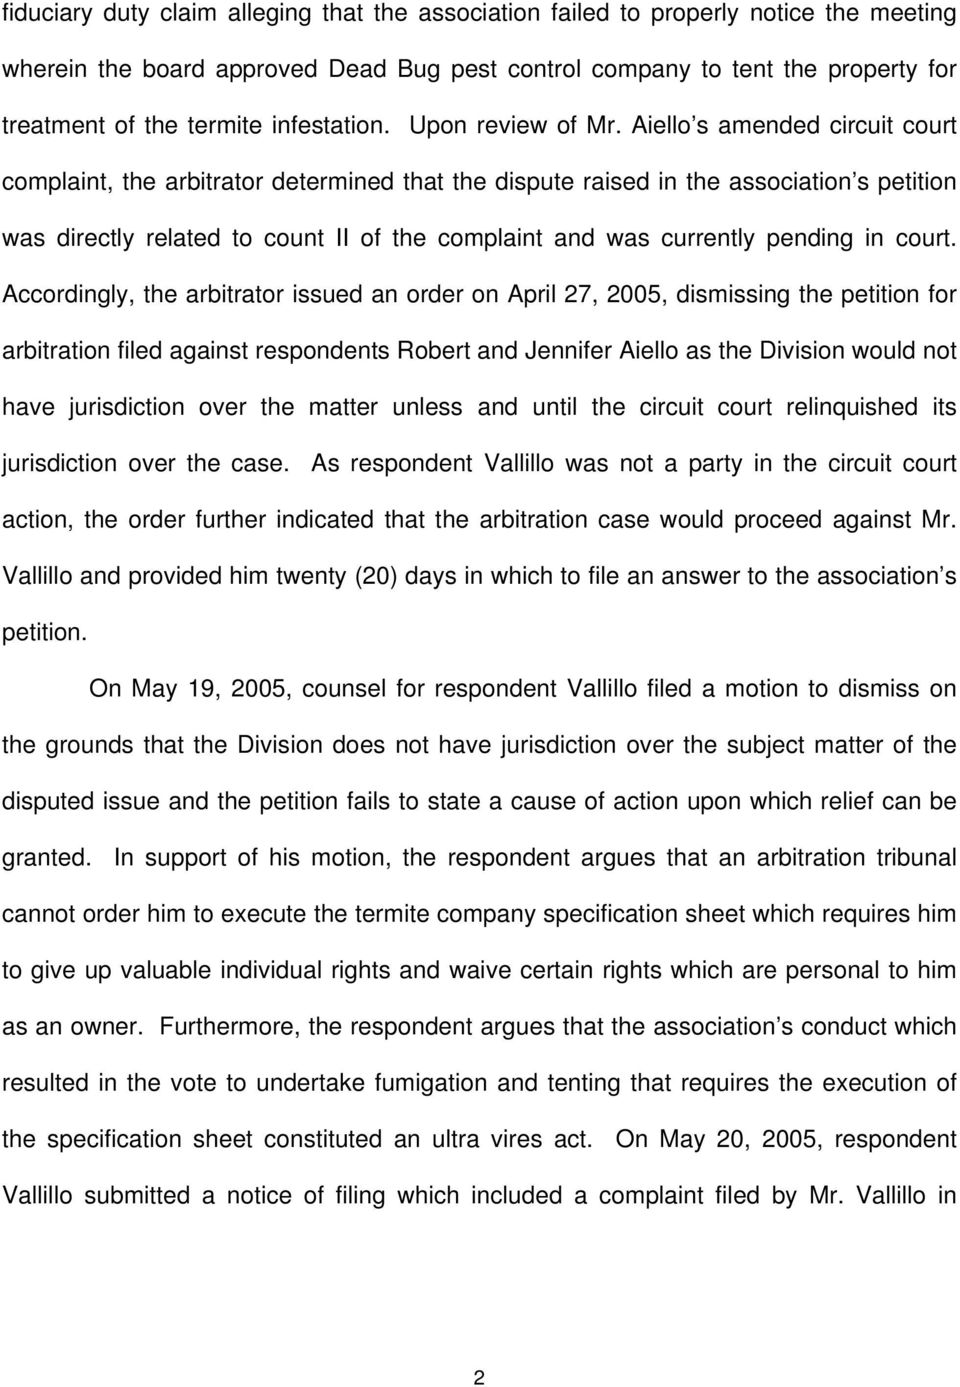 Aiello s amended circuit court complaint, the arbitrator determined that the dispute raised in the association s petition was directly related to count II of the complaint and was currently pending